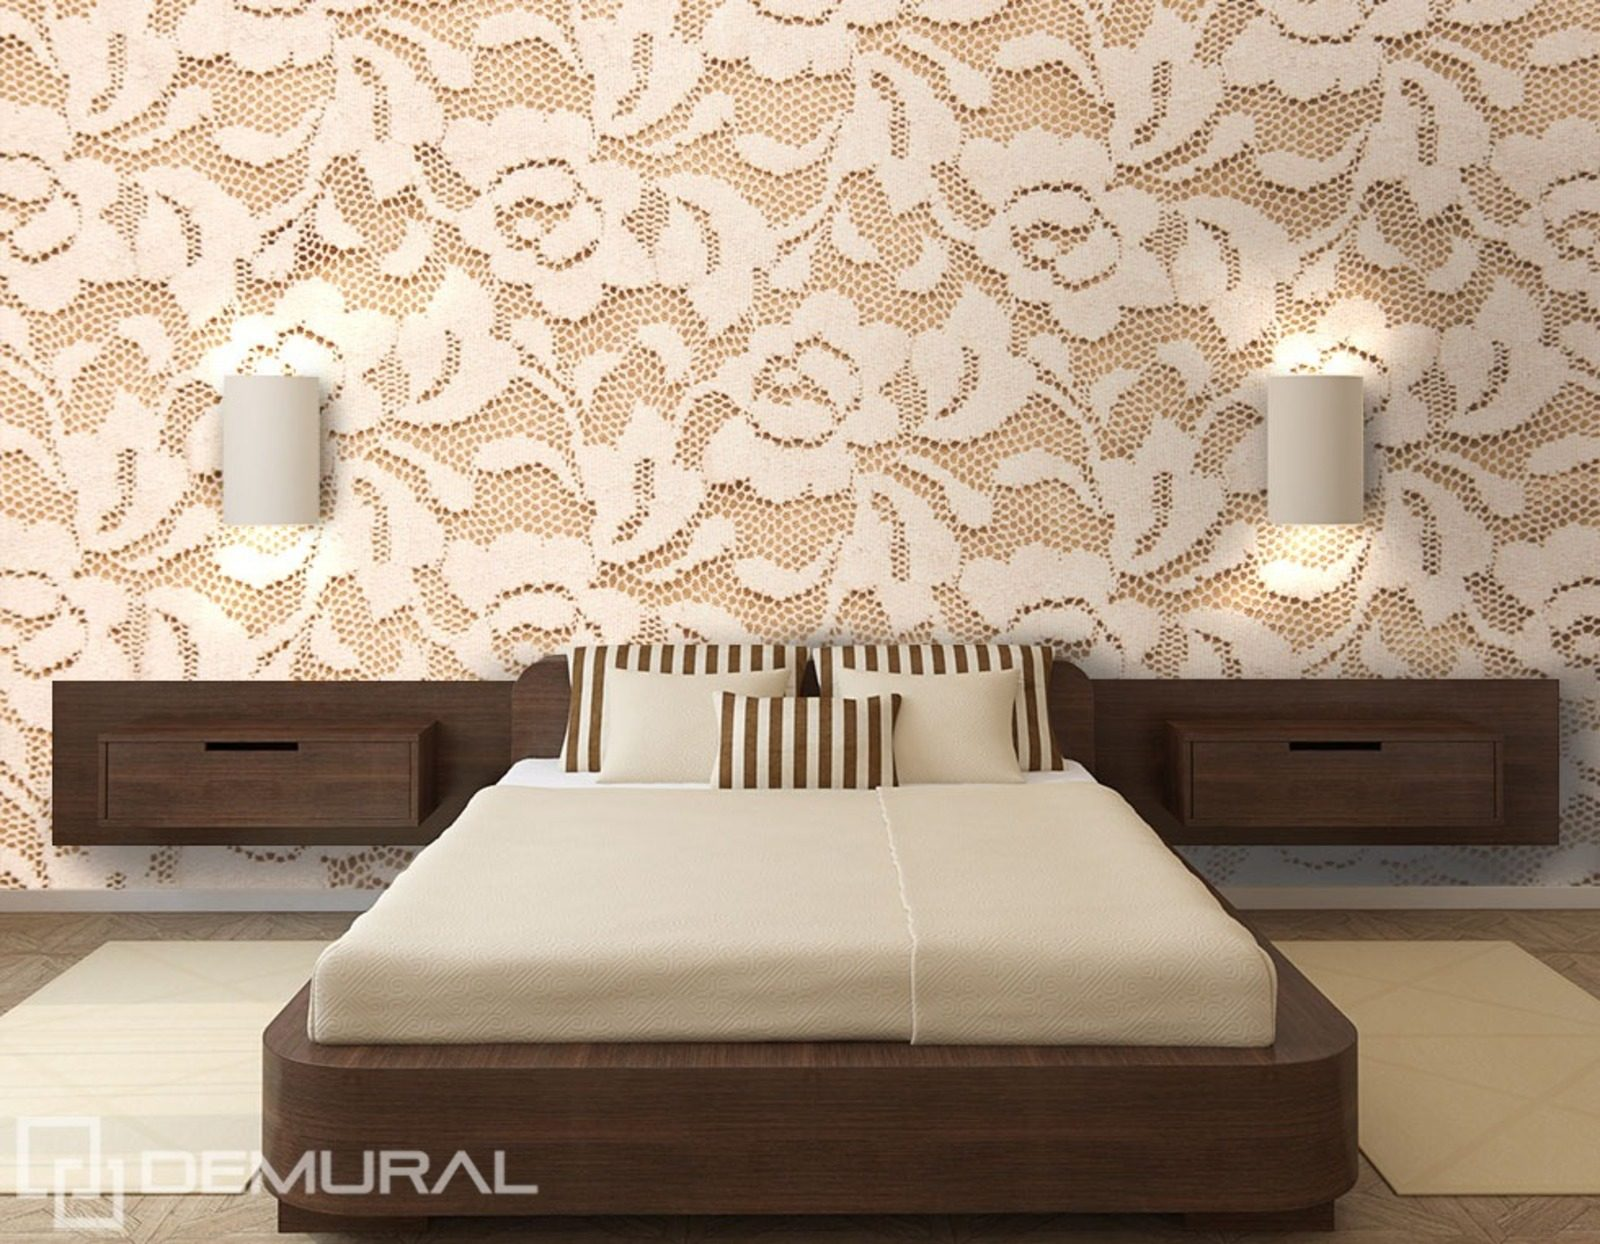 roses en dentelle papier peint pour le chambres coucher papiers peints demural. Black Bedroom Furniture Sets. Home Design Ideas